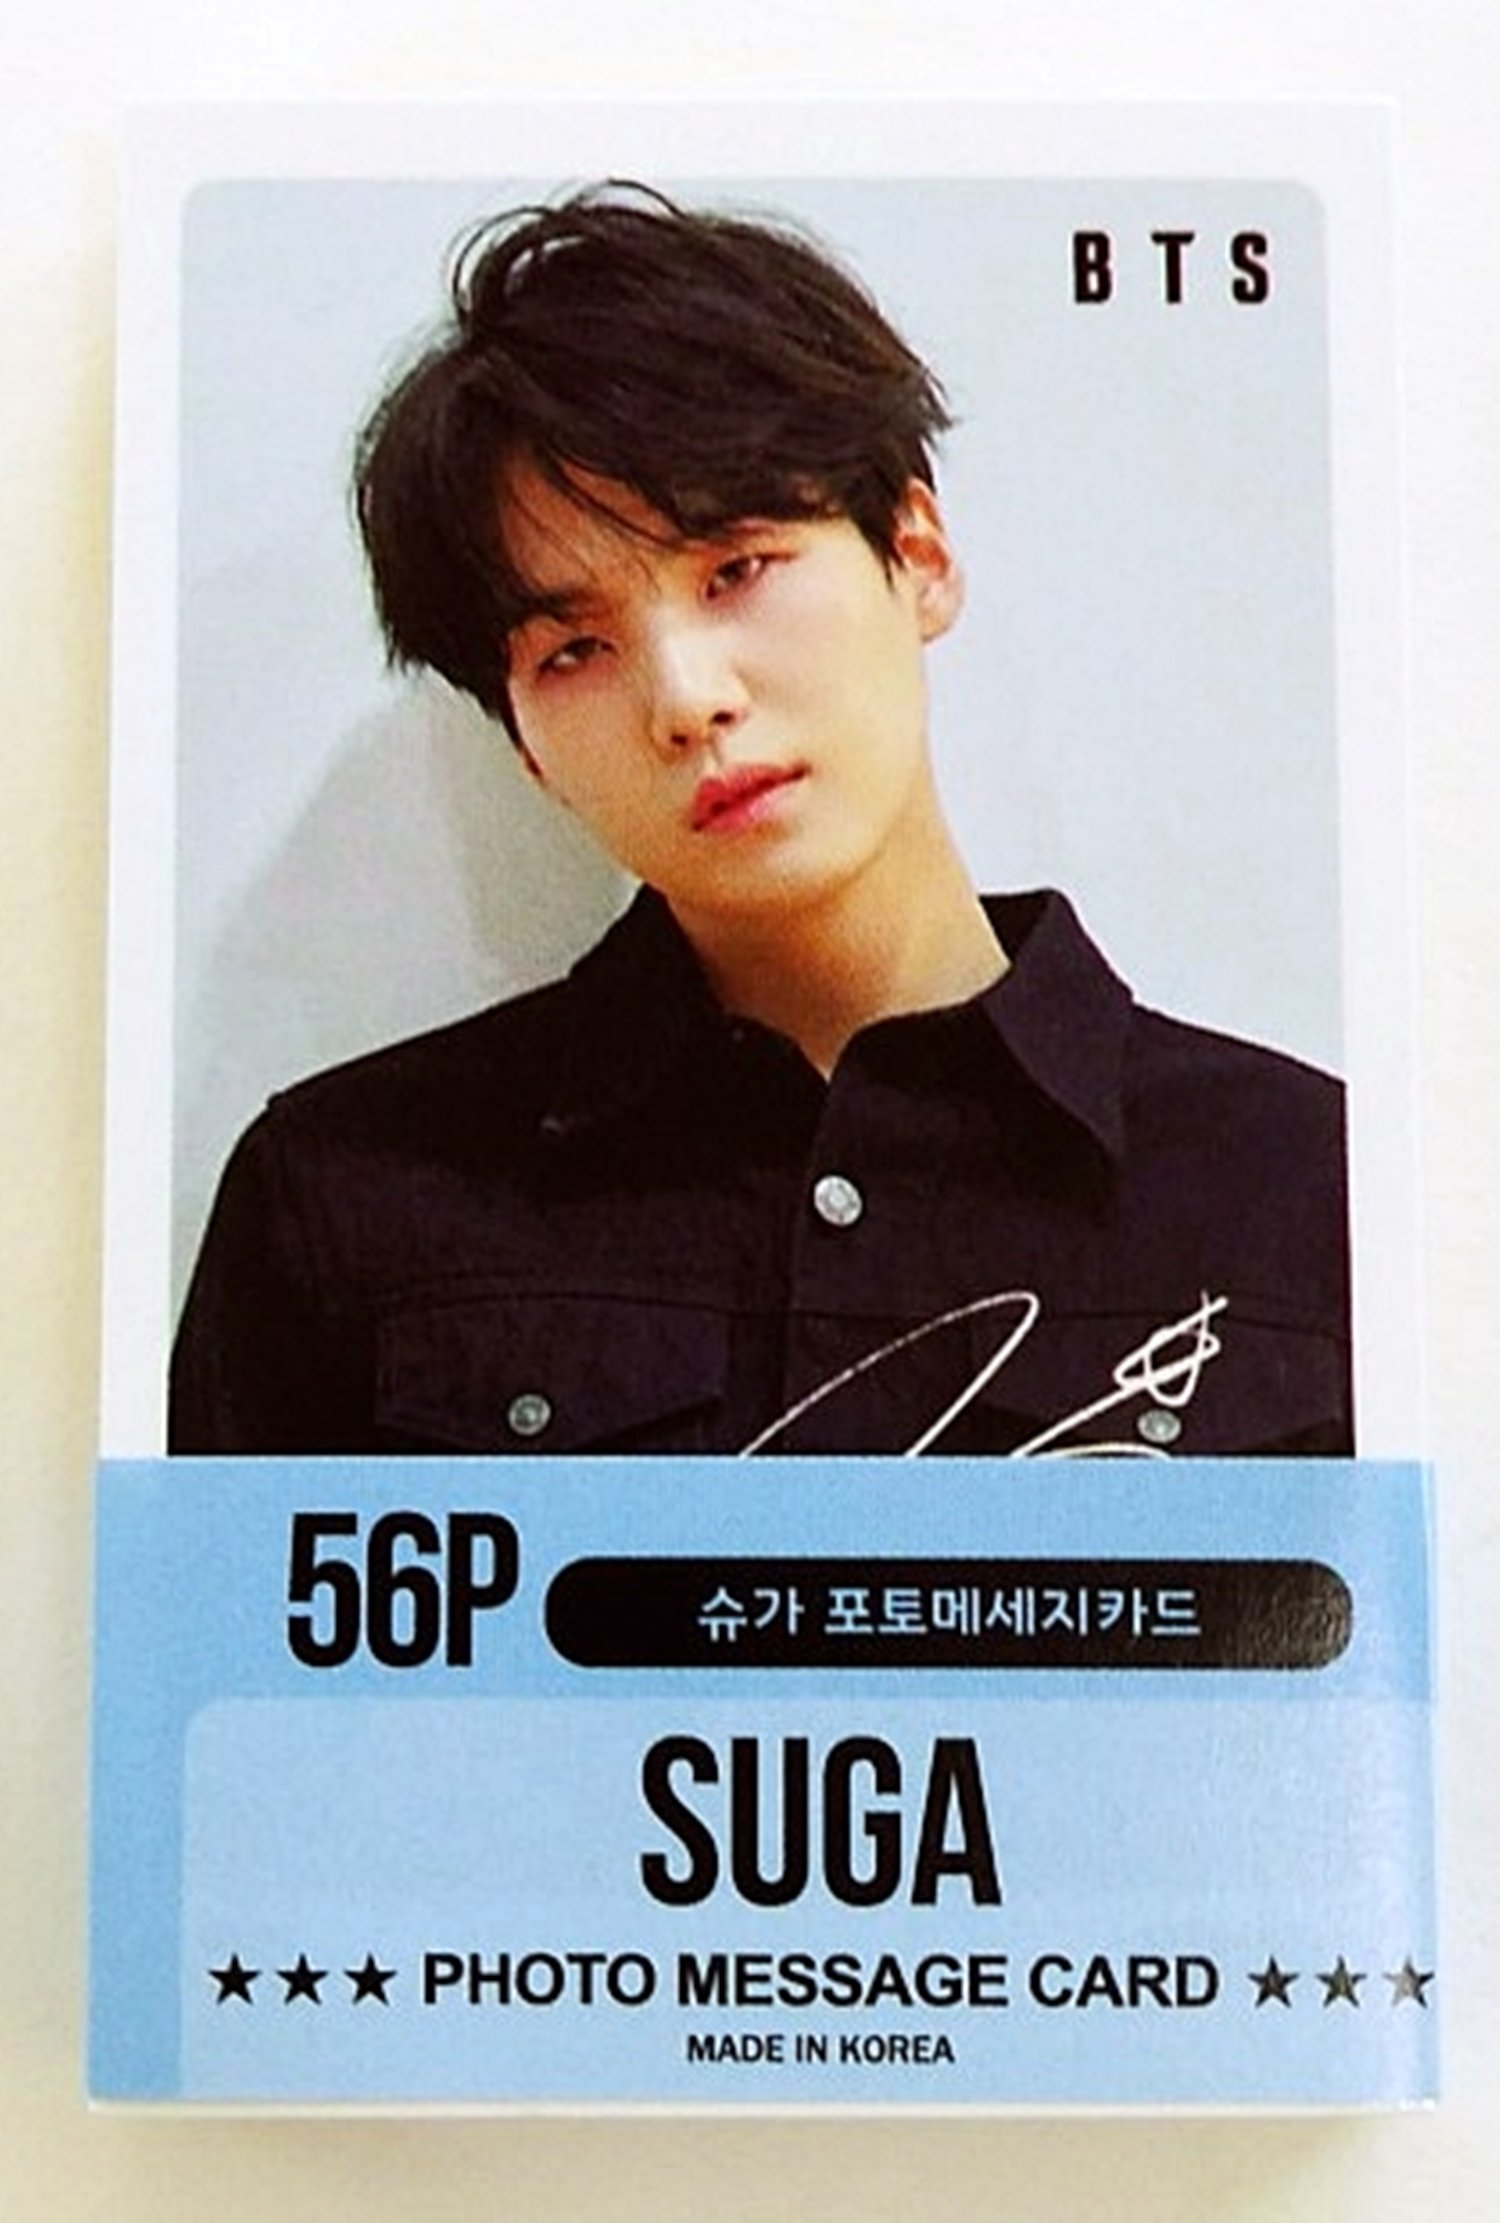 BTS - SUGA Solo Photocards 56pcs